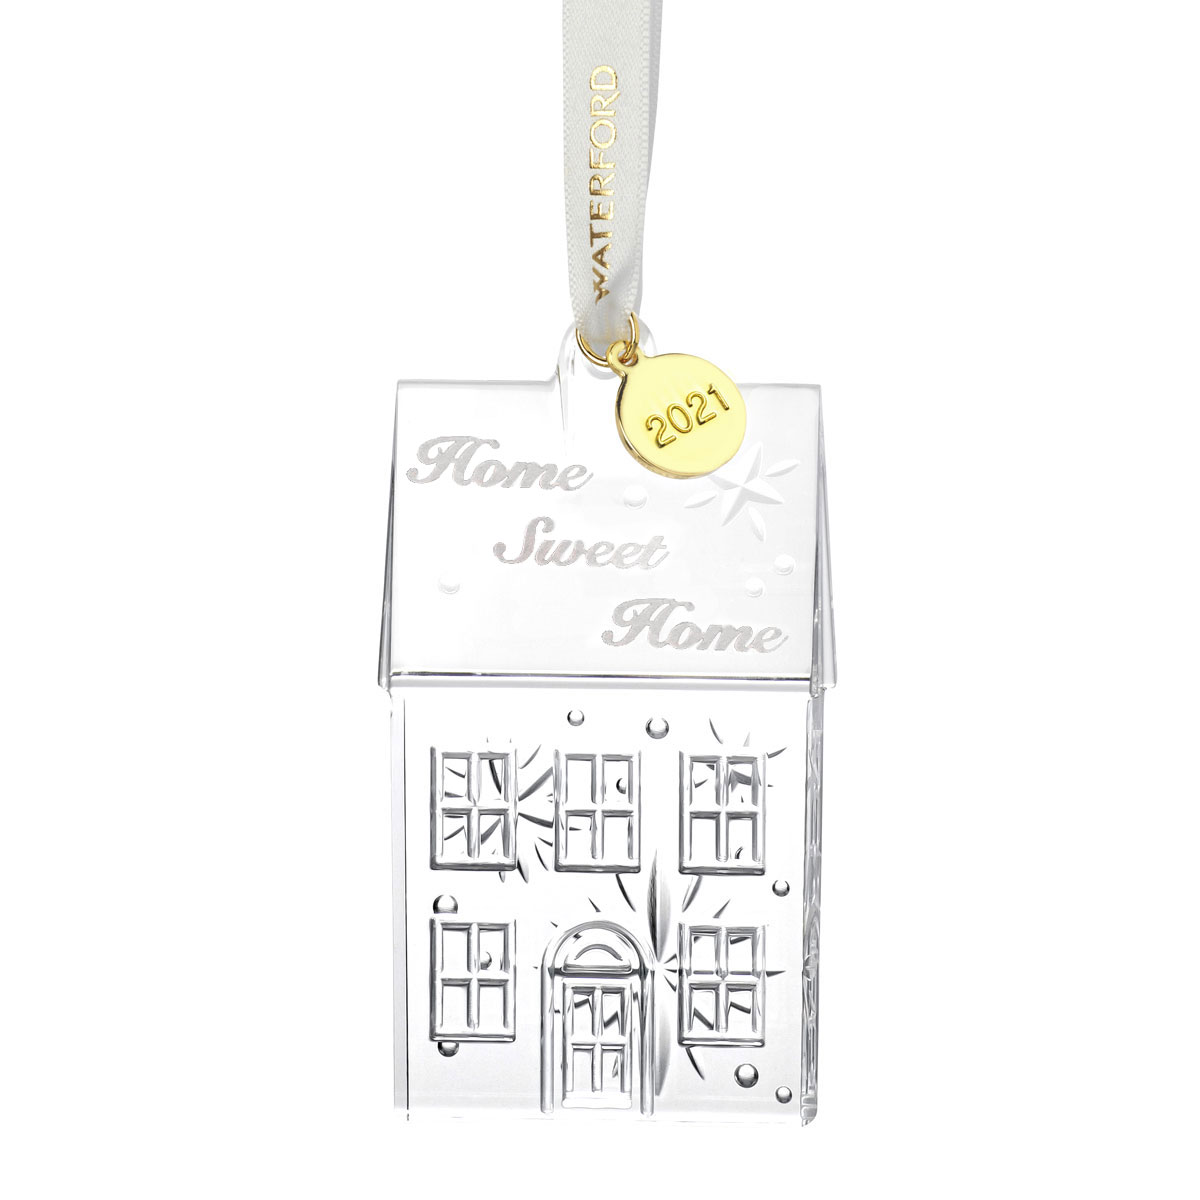 Waterford Crystal 2021 Home Sweet Home Dated Ornament